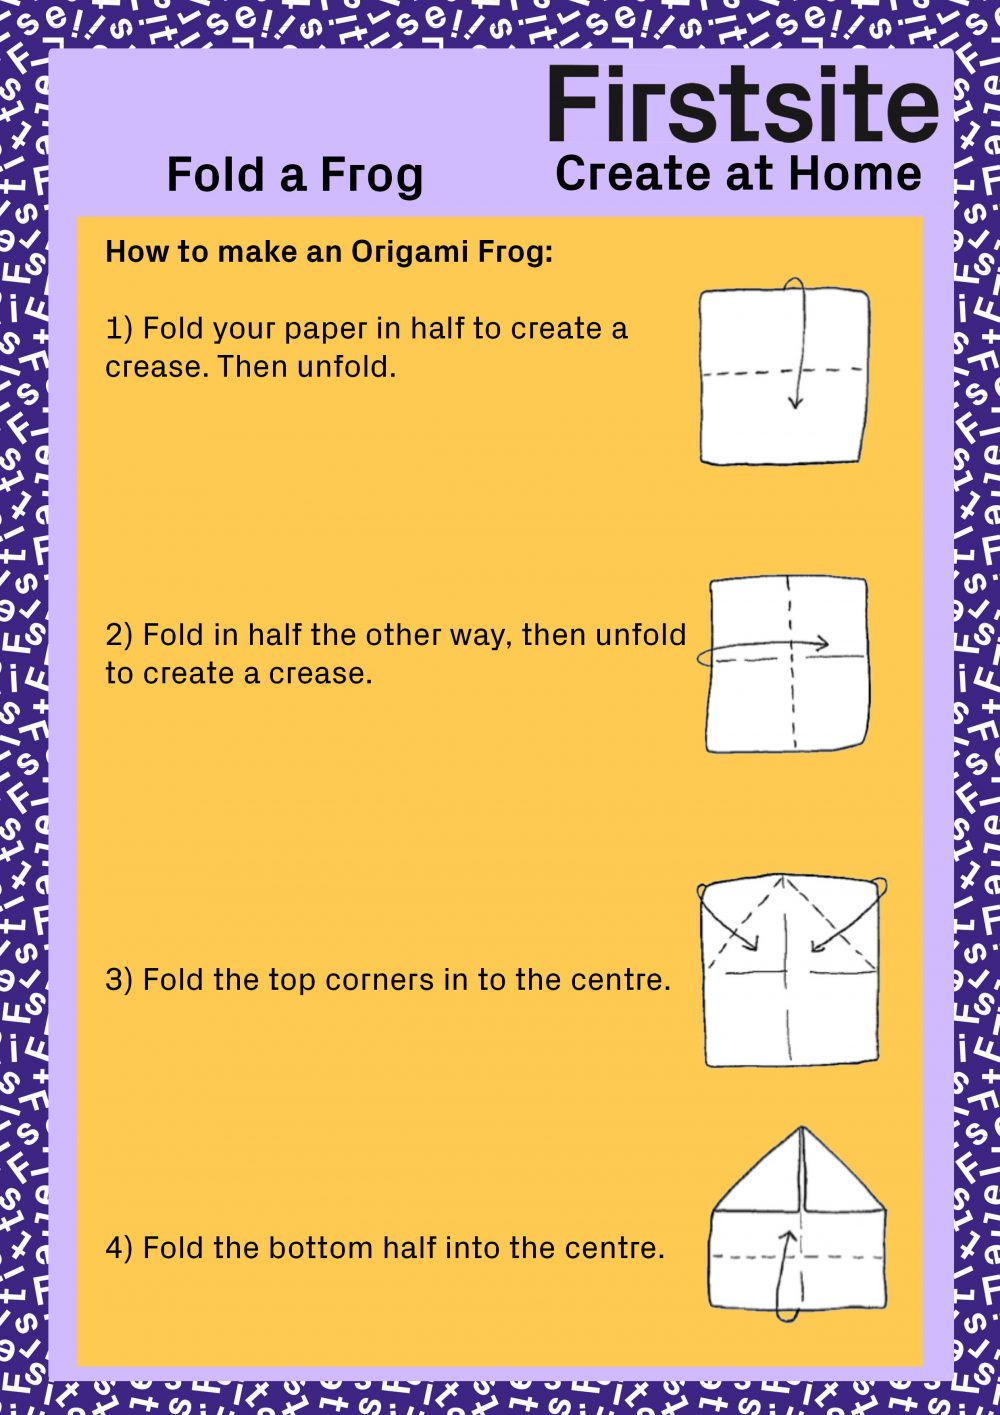 Firstsite Create at Home Fold a Friend Instructions pg 2 of 5